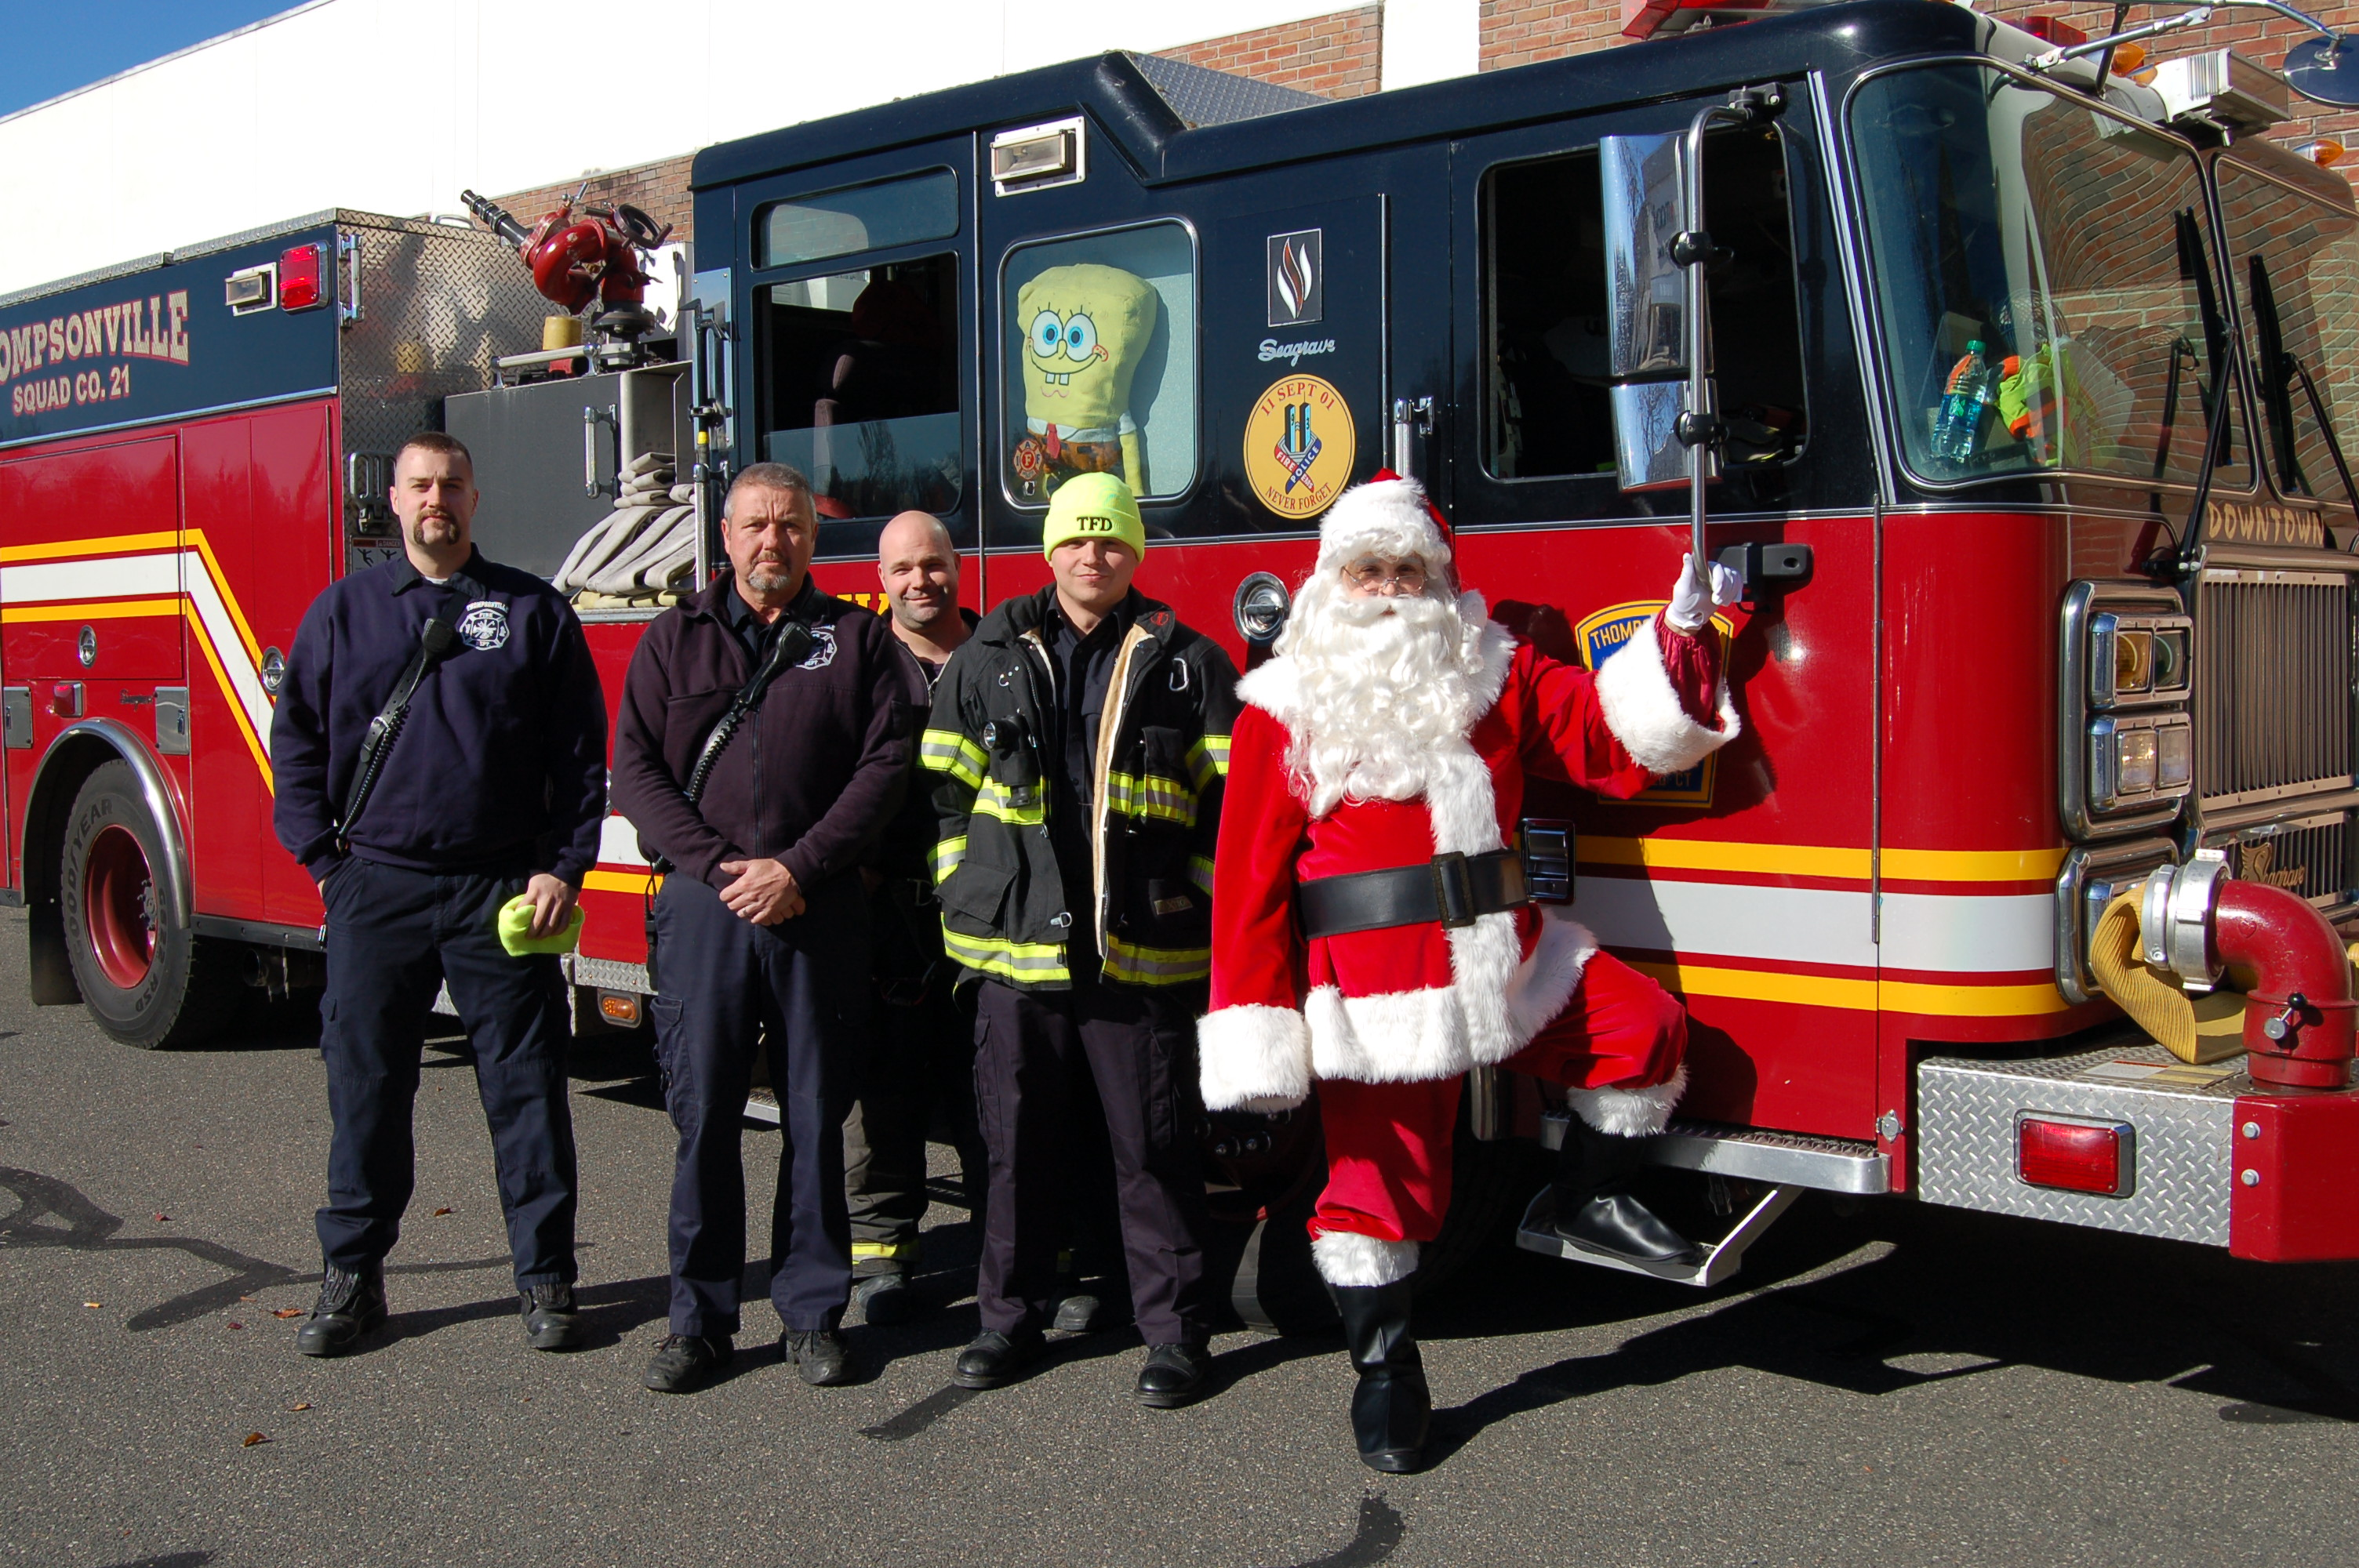 Firefighters with Santa